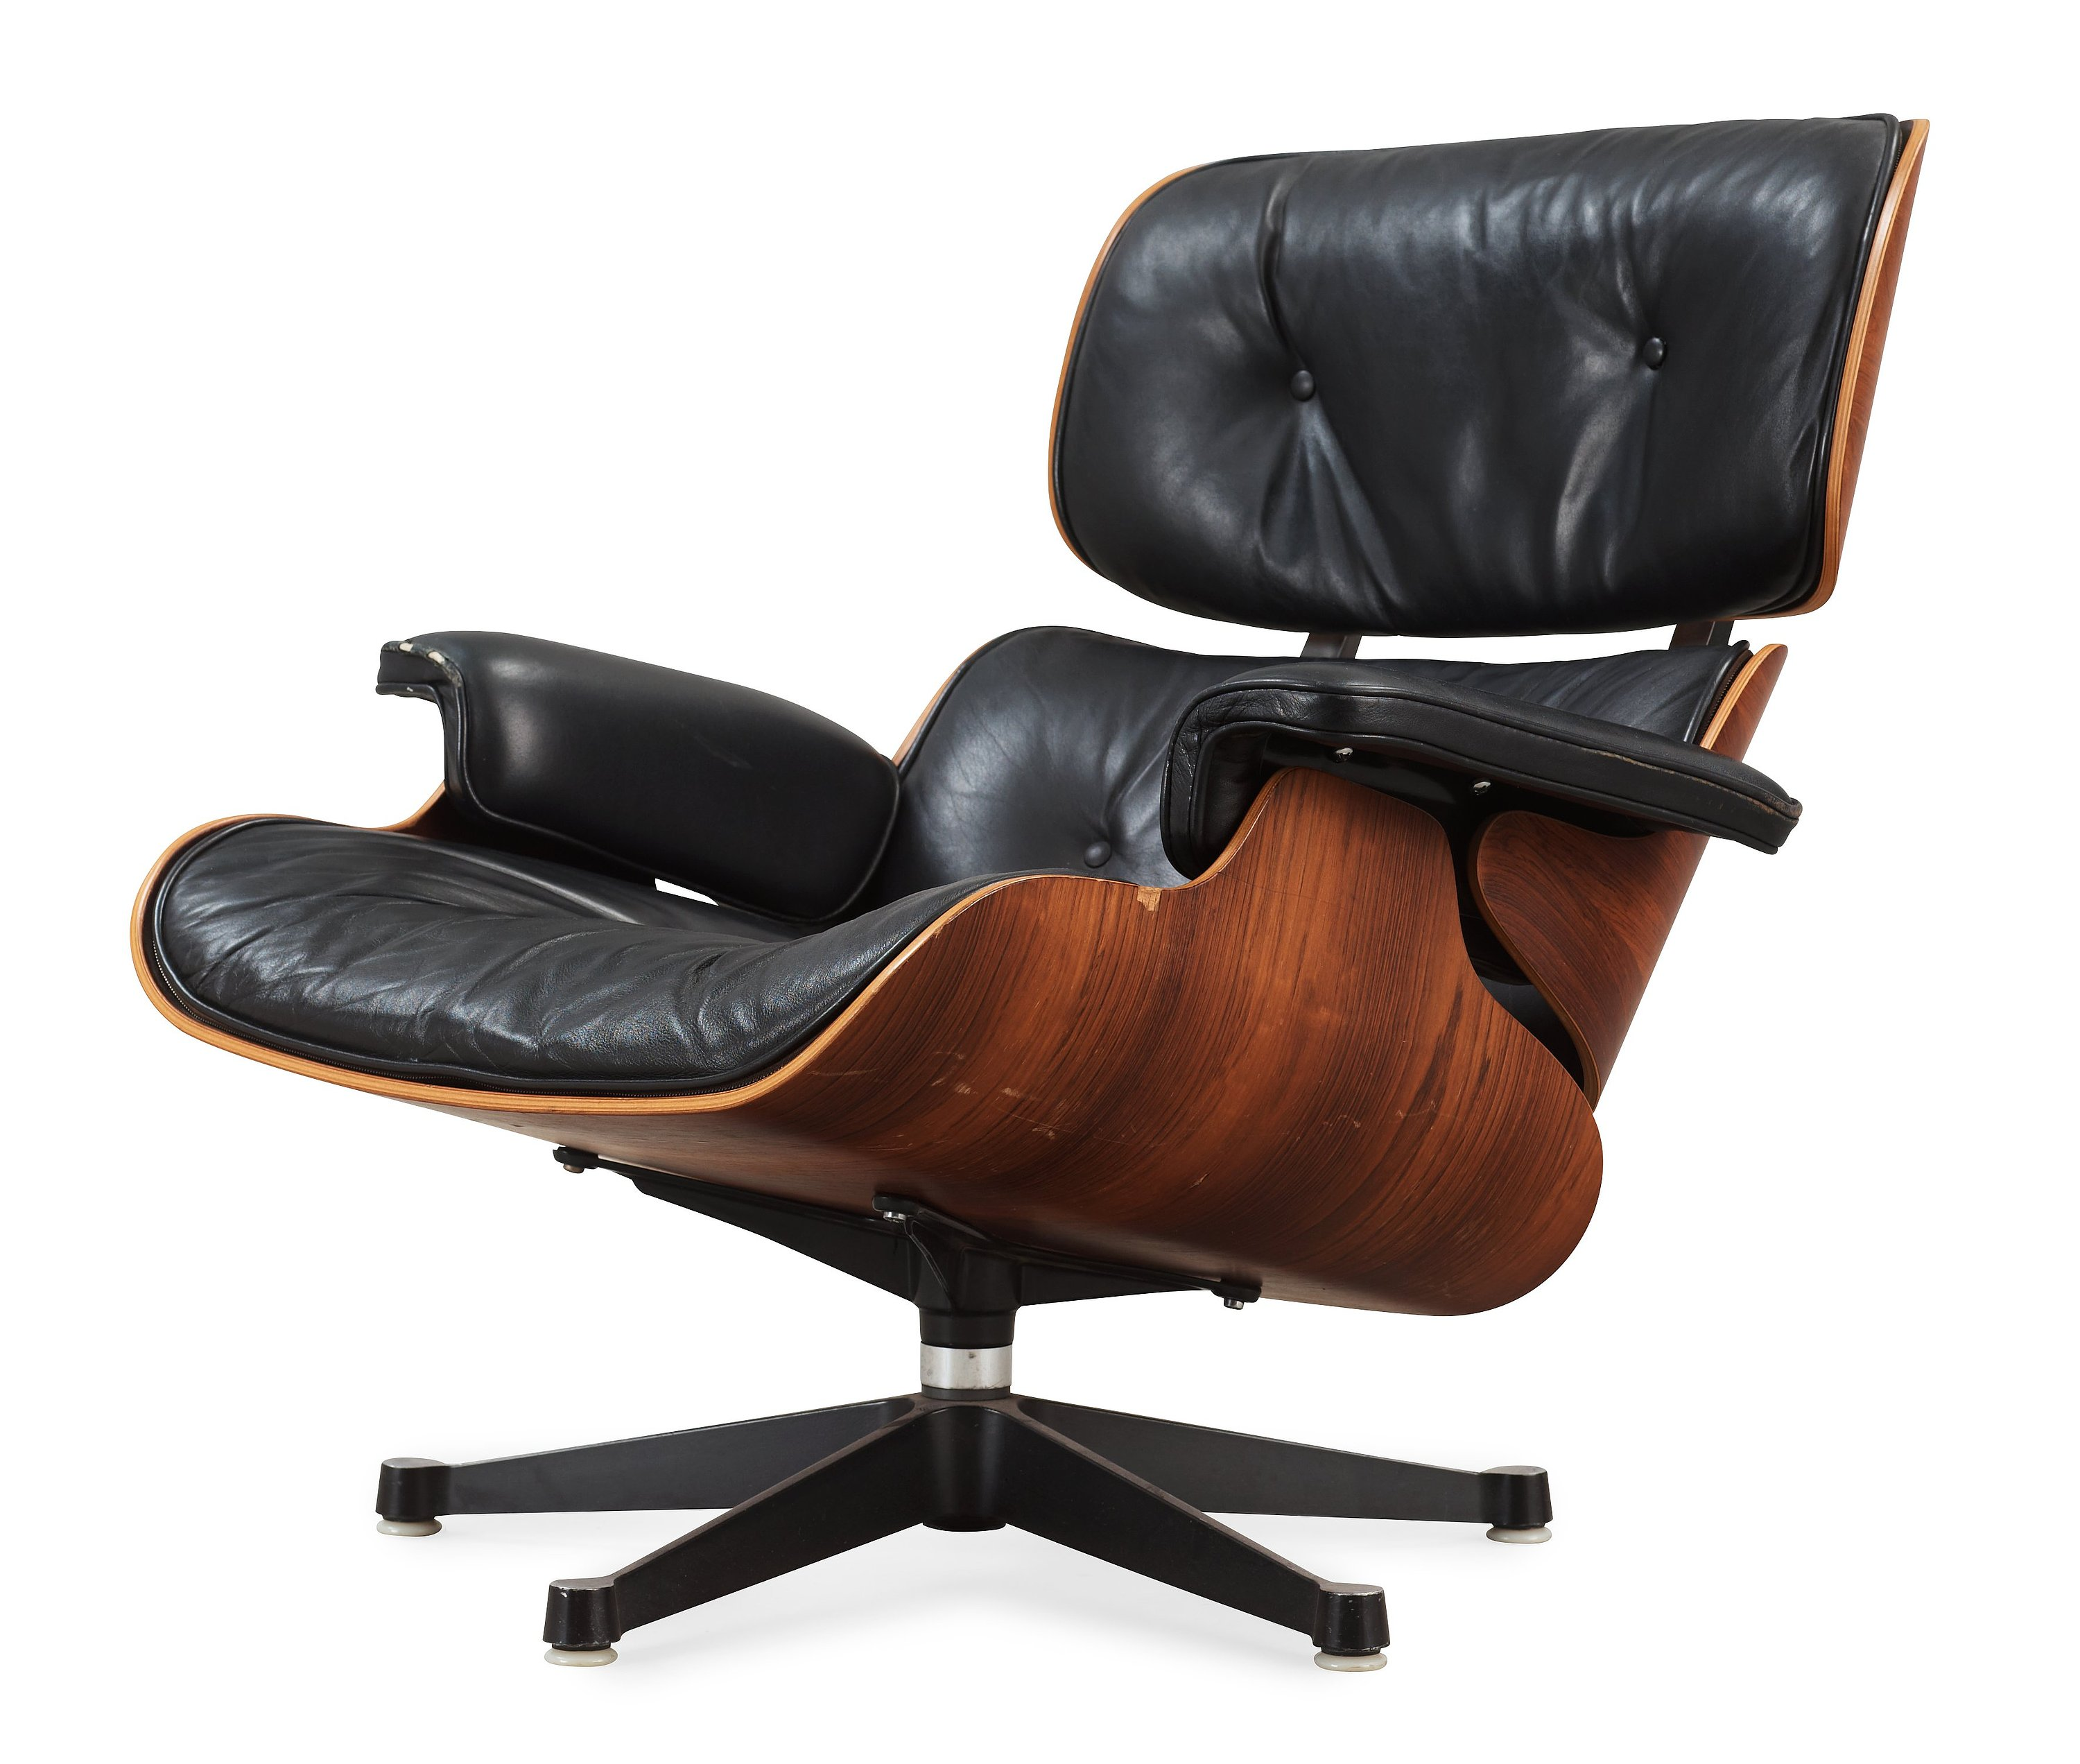 eames chair herman miller fuji massage a charles and ray lounge reportedly made on license by nk sweden in the 1960 s